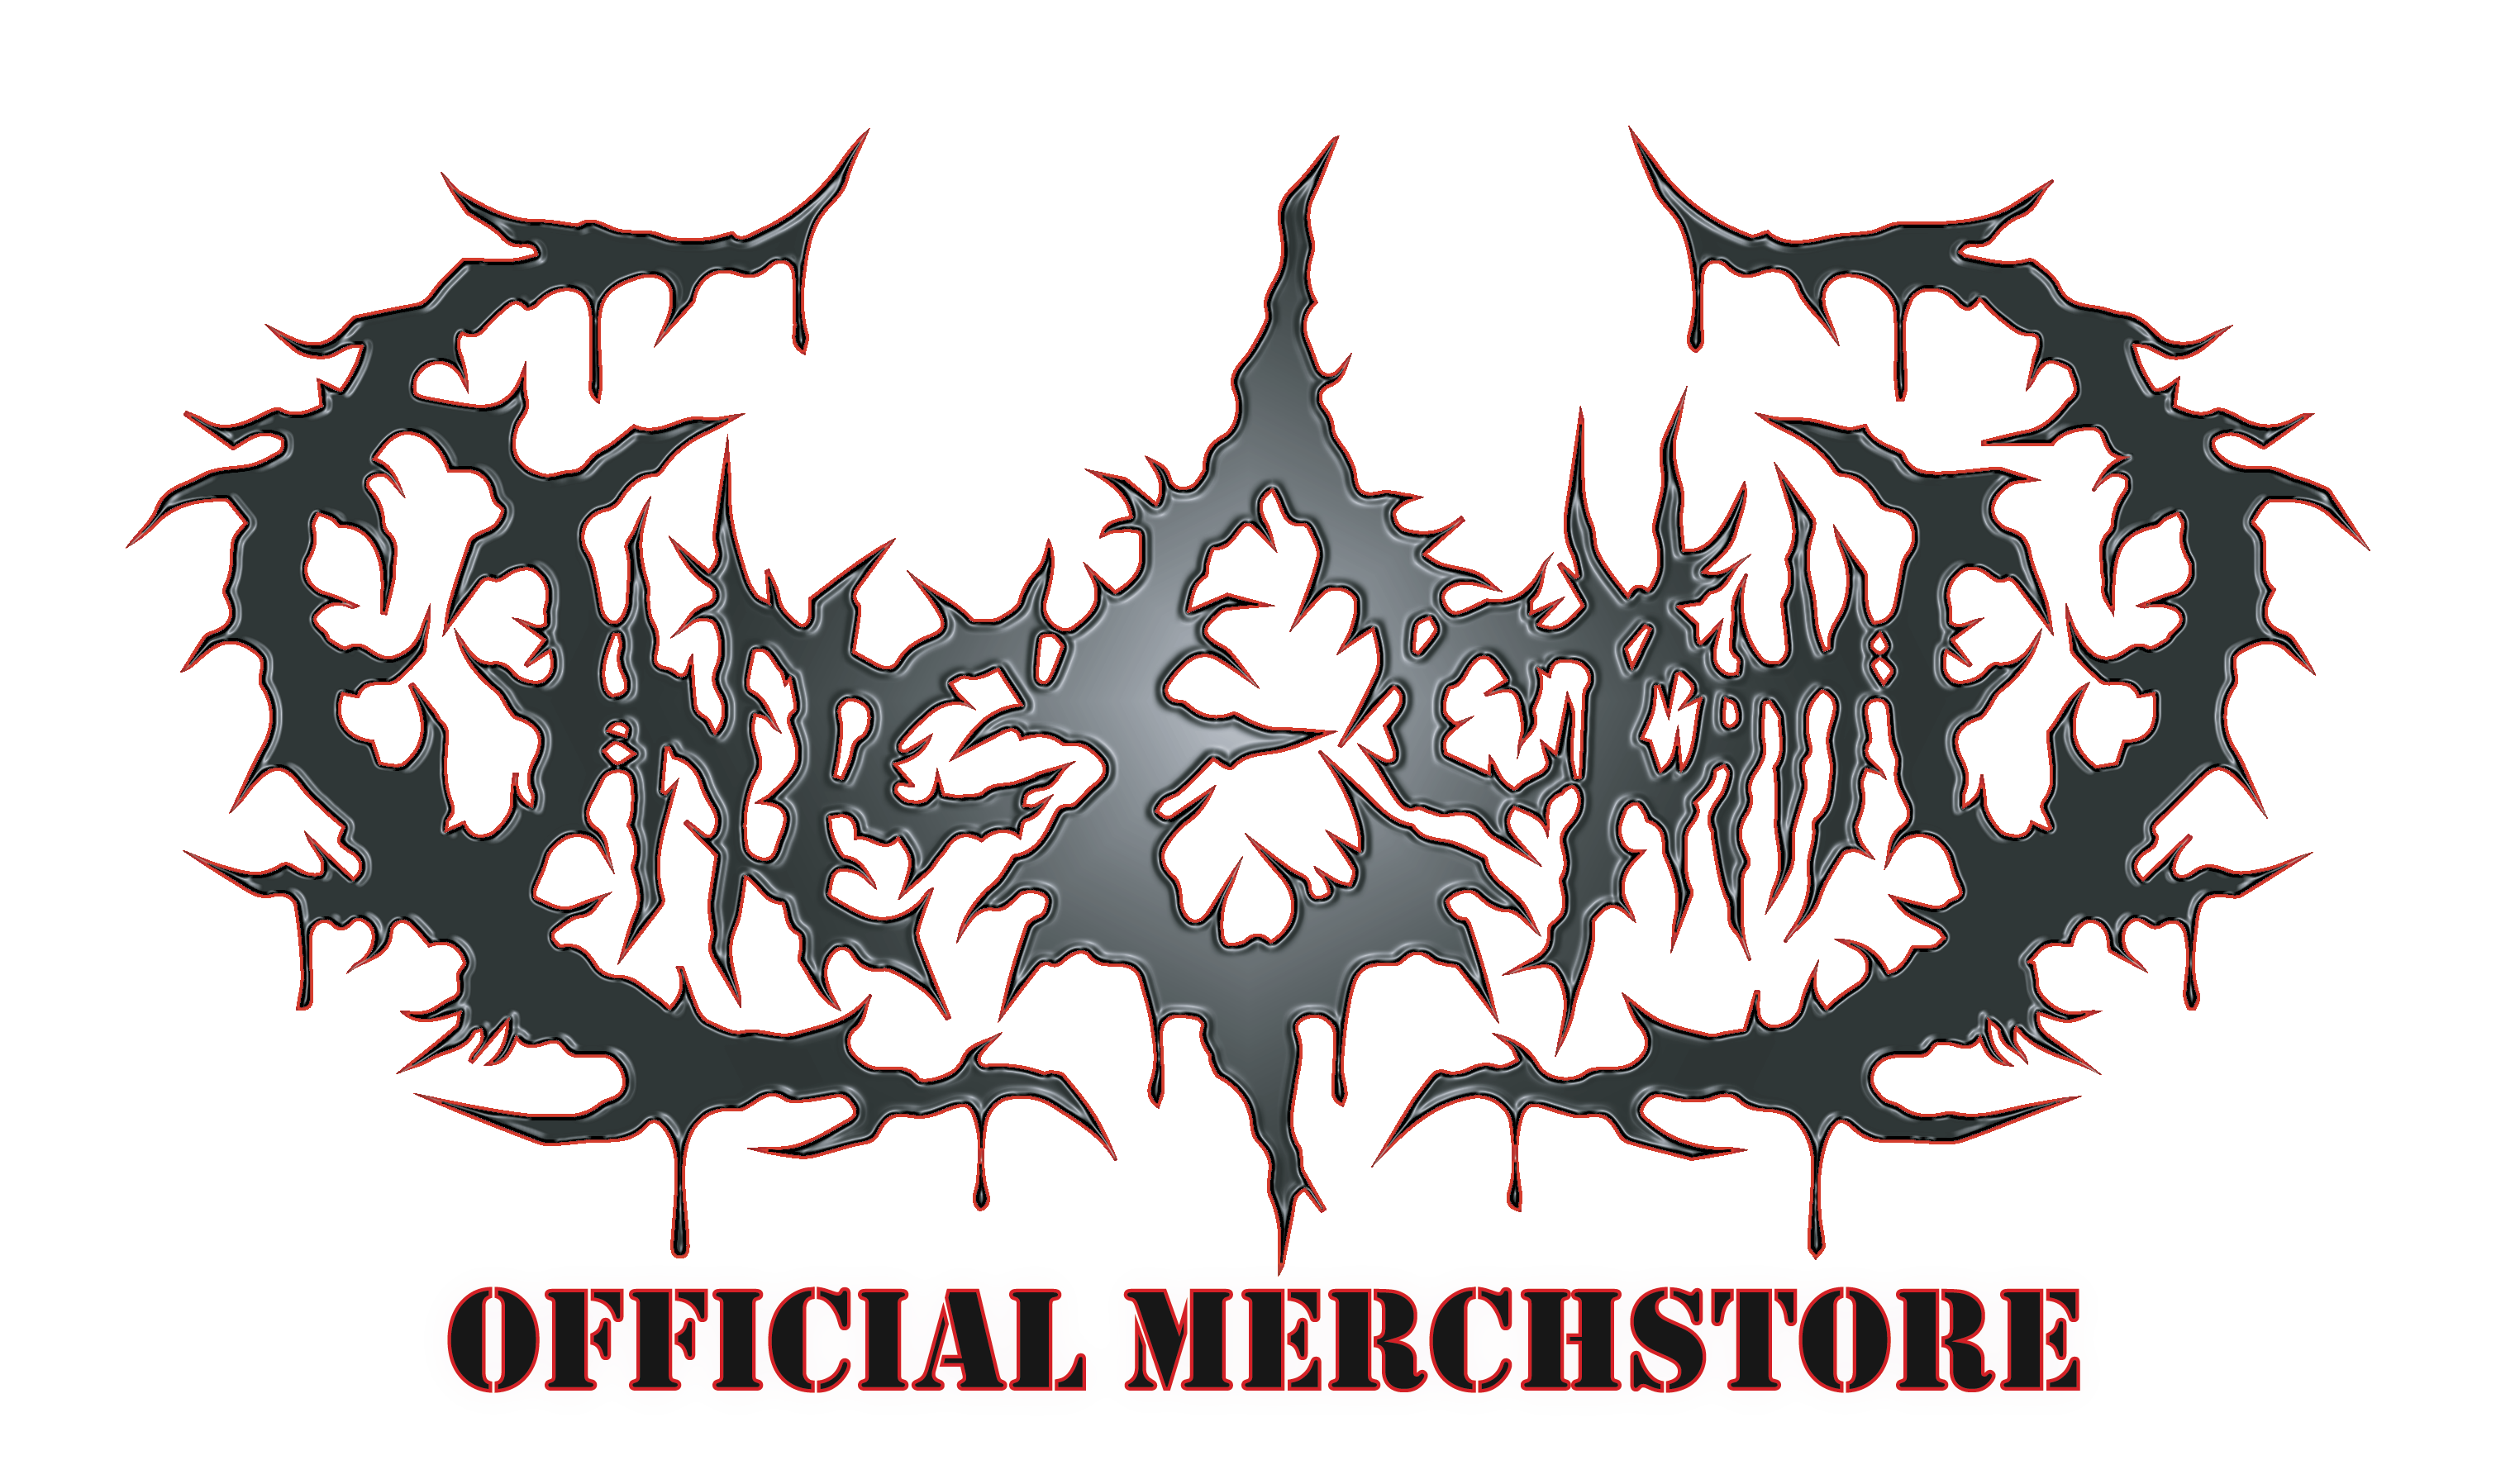 ONICECTOMY - OFFICIAL MERCH STORE